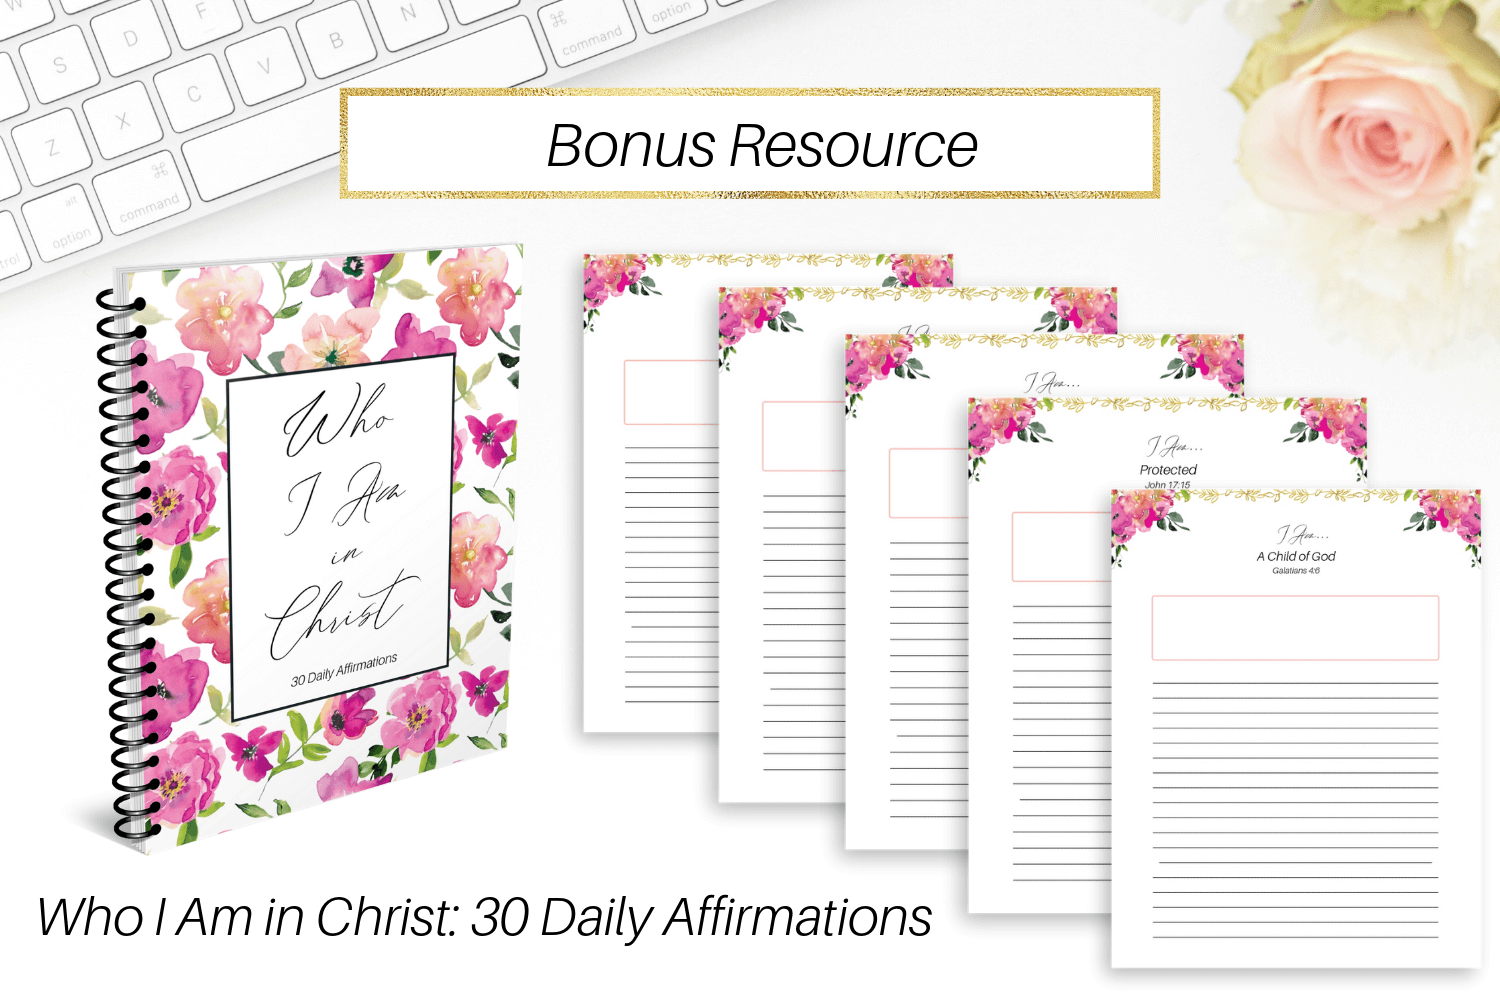 Bonus Resource:  Who I Am in Christ Daily Affirmations Journal